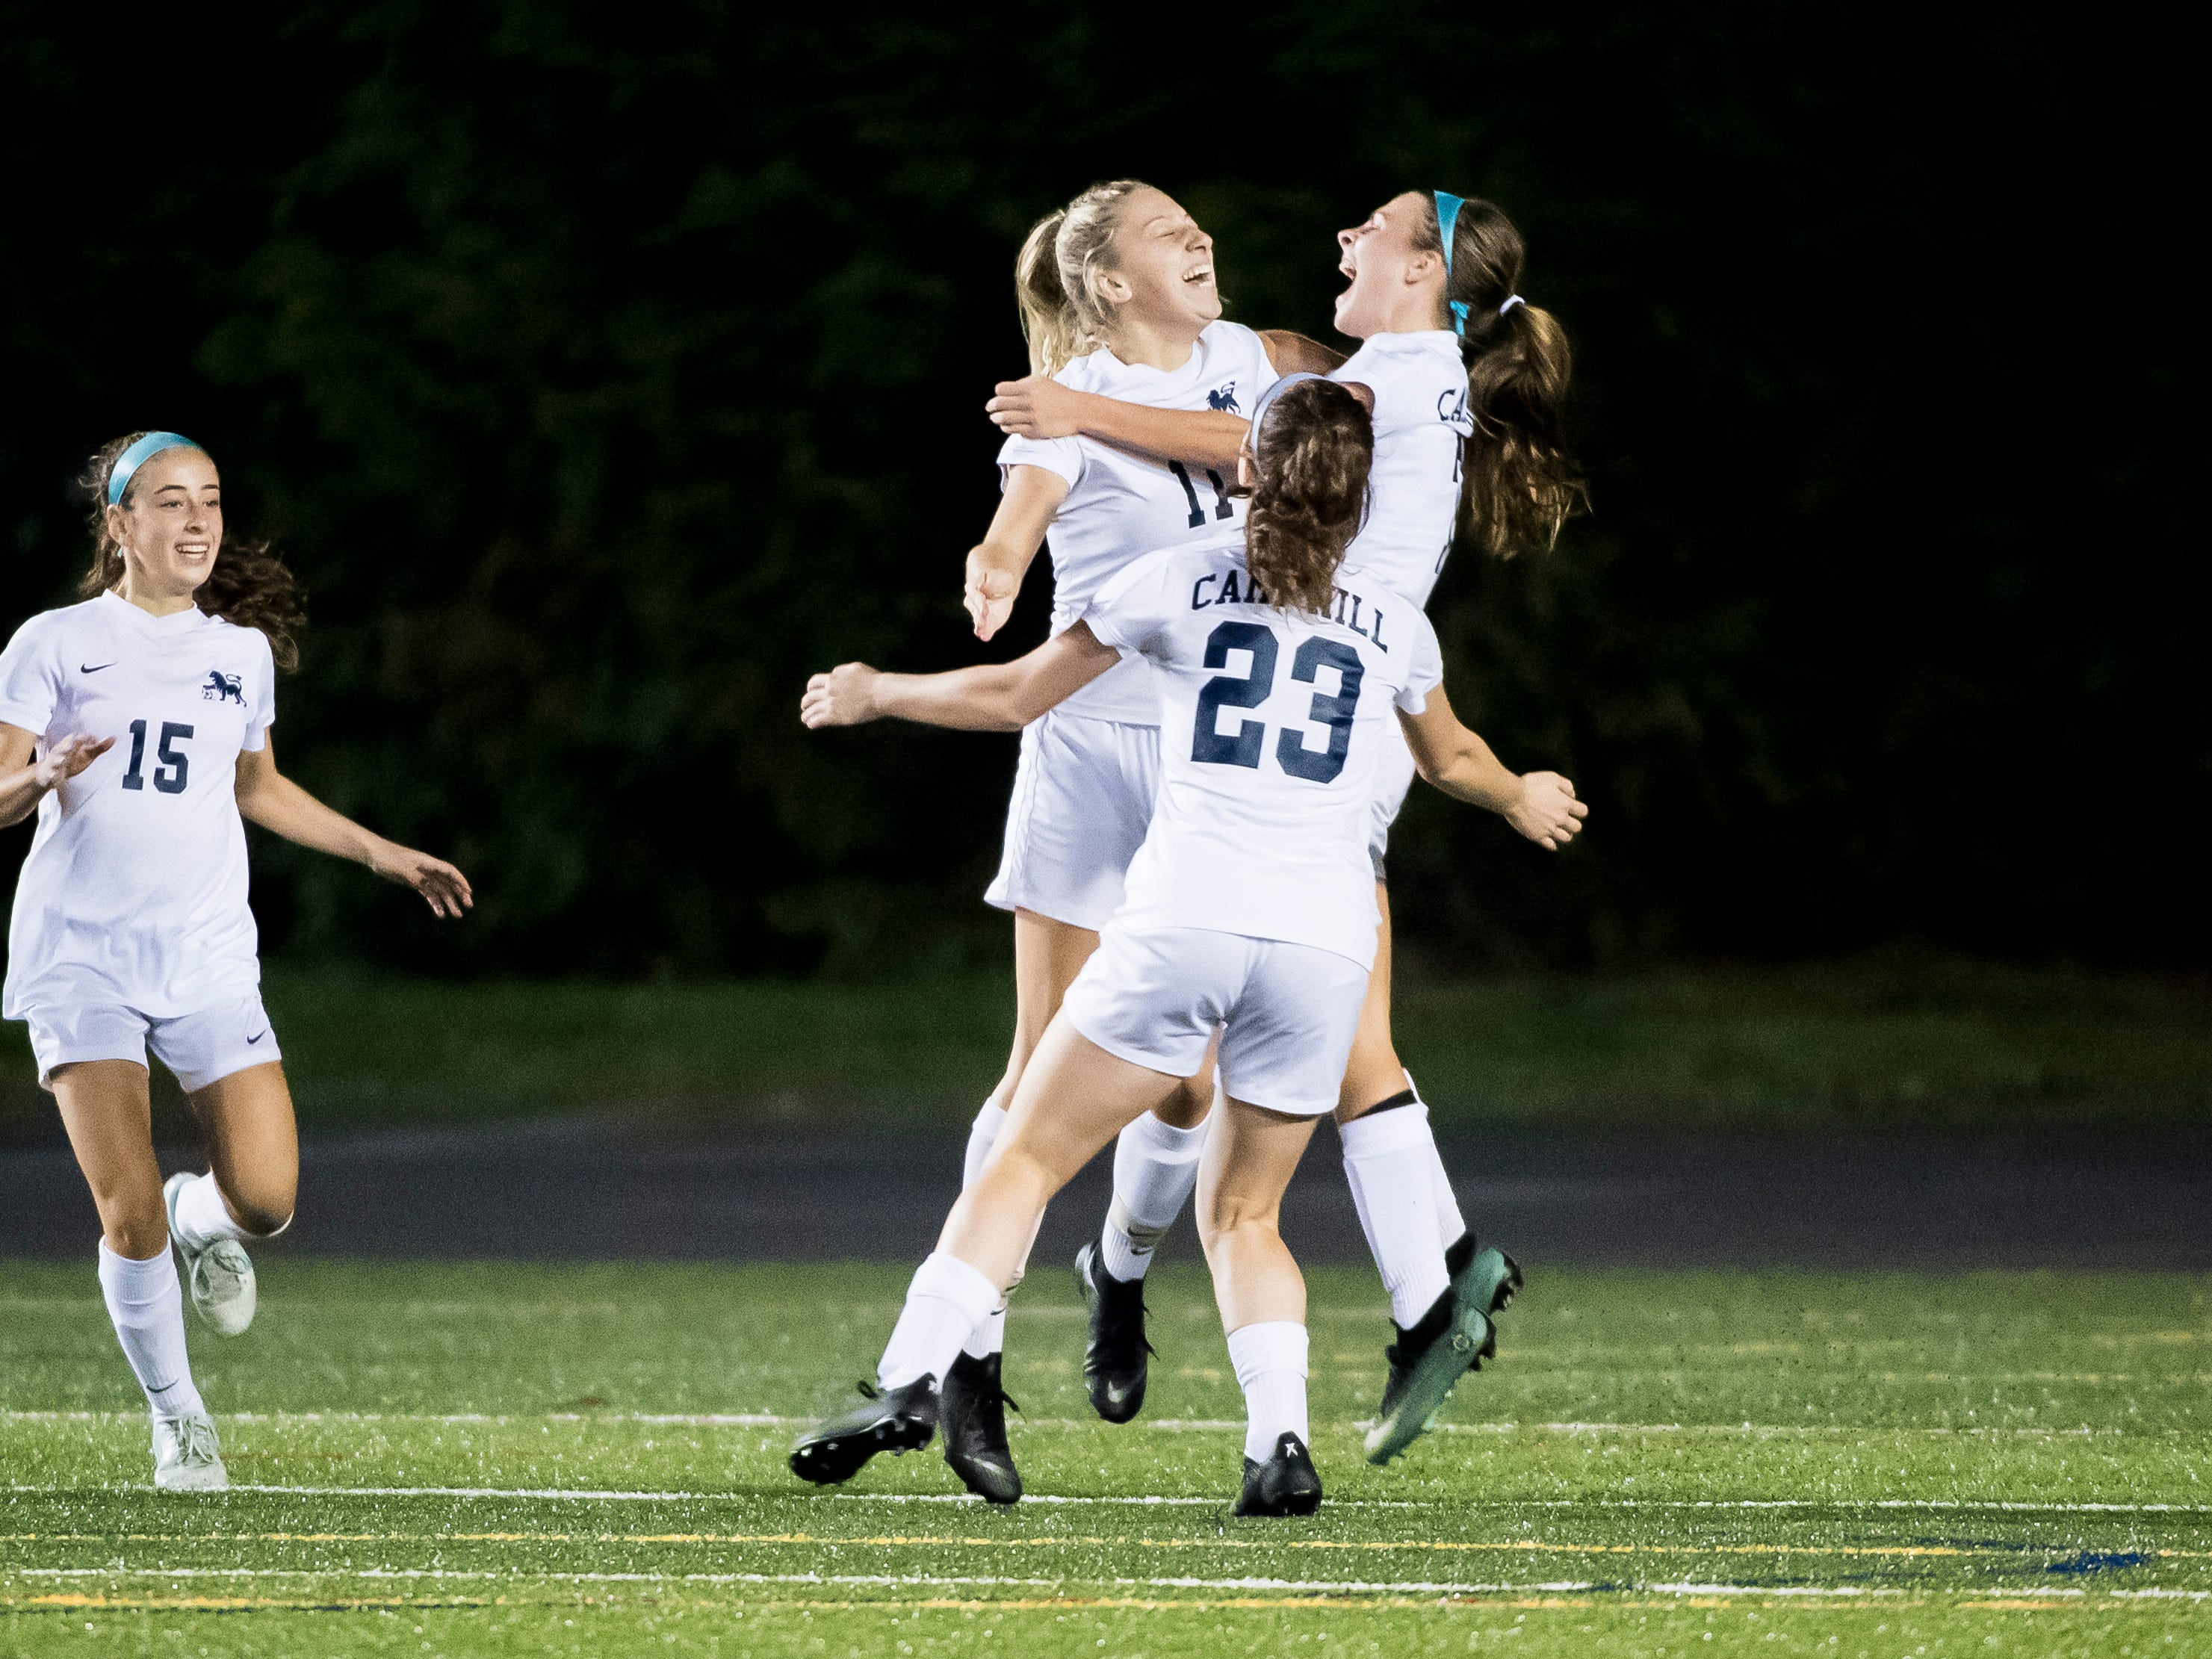 Camp Hill players celebrate after scoring a goal in overtime during the PIAA District III Class A championship game at Hershey Park Stadium on Wednesday, October 31, 2018. The Knights fell 1-0.